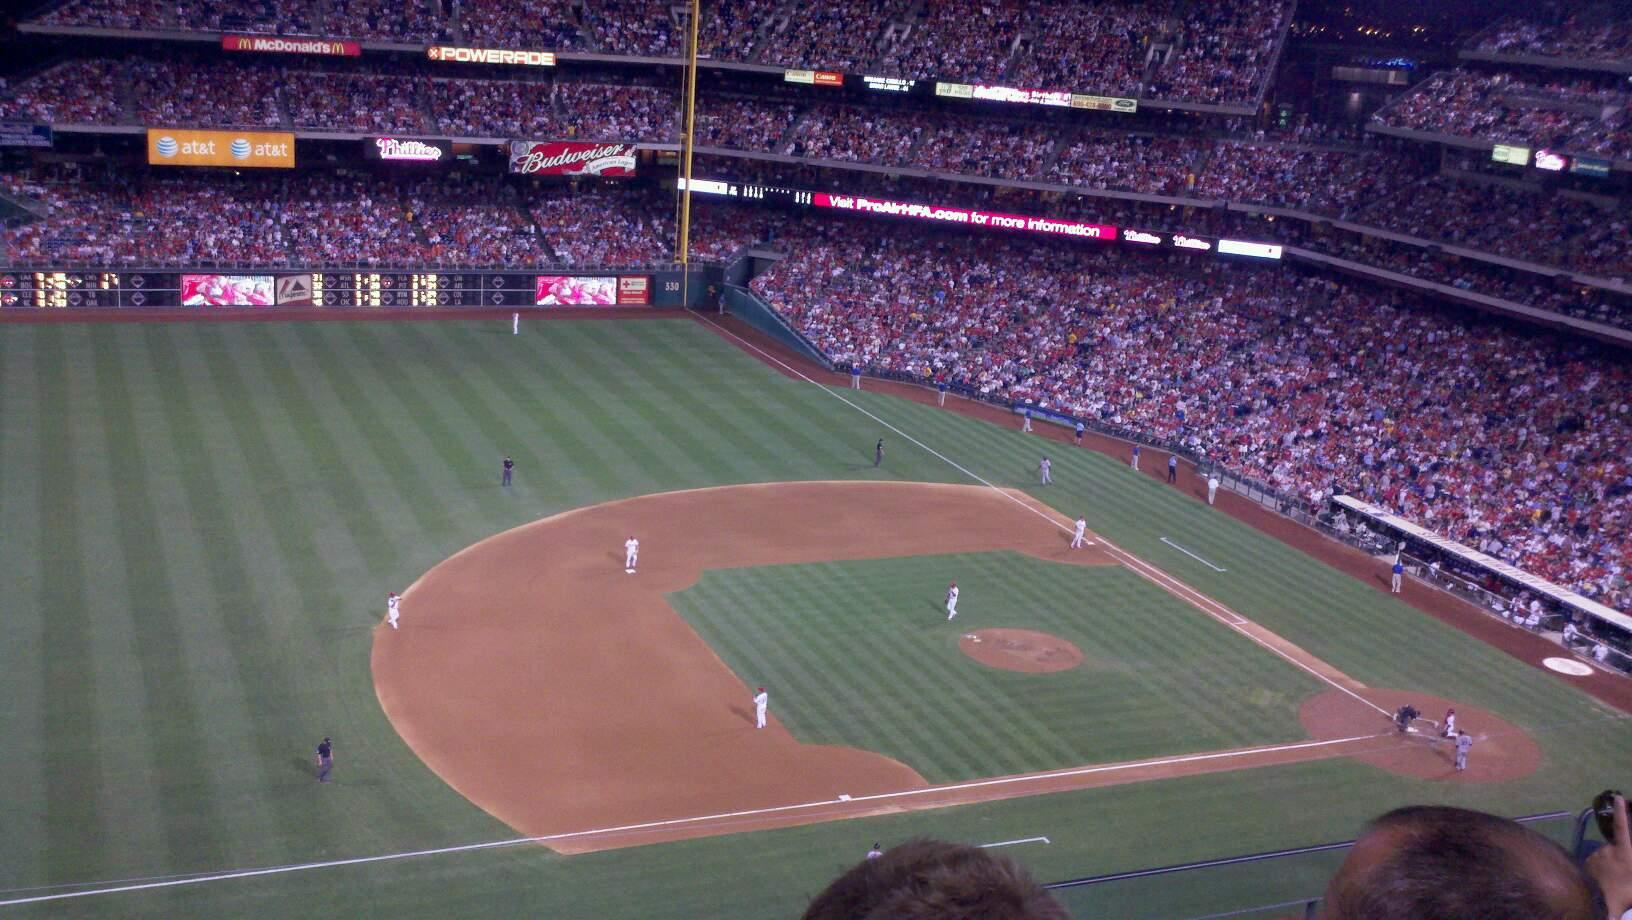 Citizens Bank Park Section 428 Row 3 Seat 21